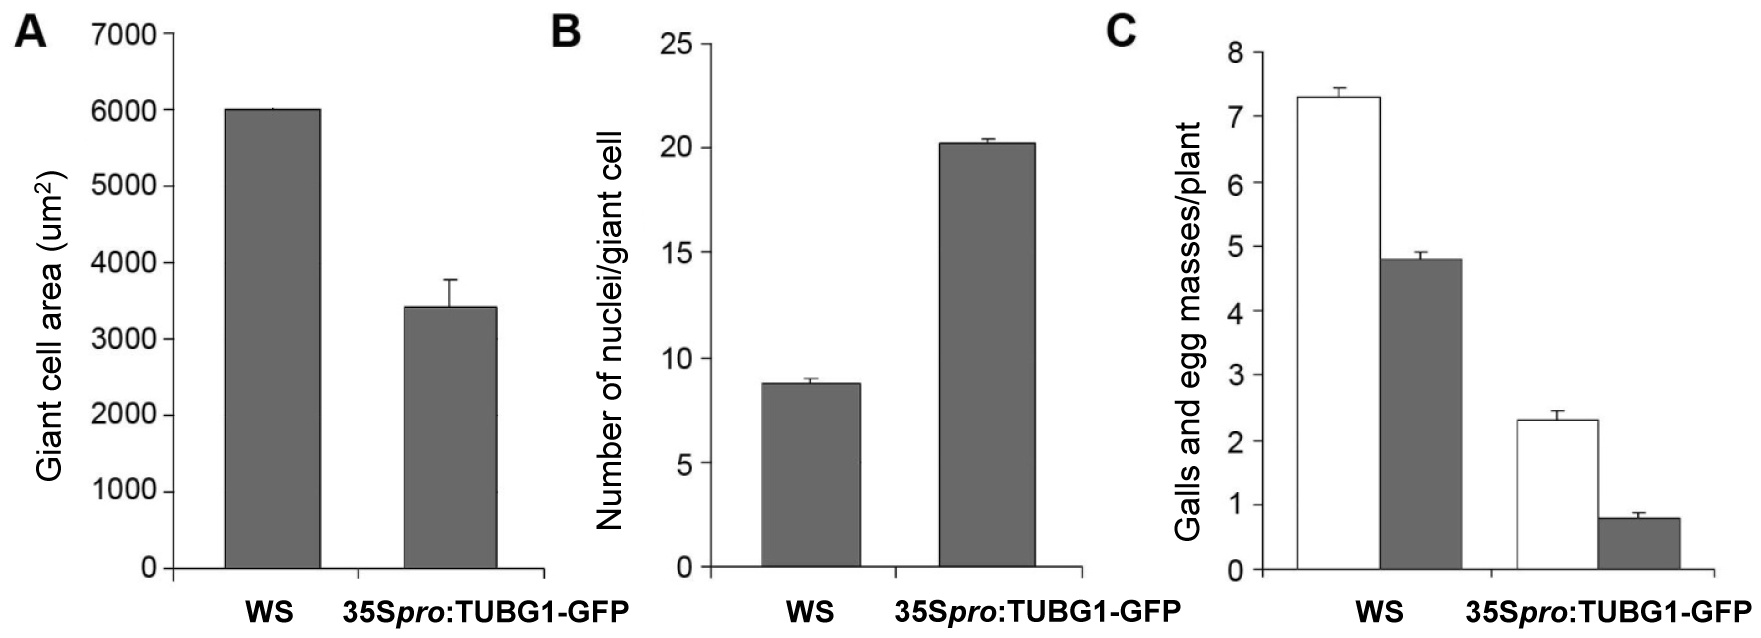 Giant Cell Area, Number of Nuclei and Infection Tests of γ-Tubulin Mutants Compared to Wild-Type.